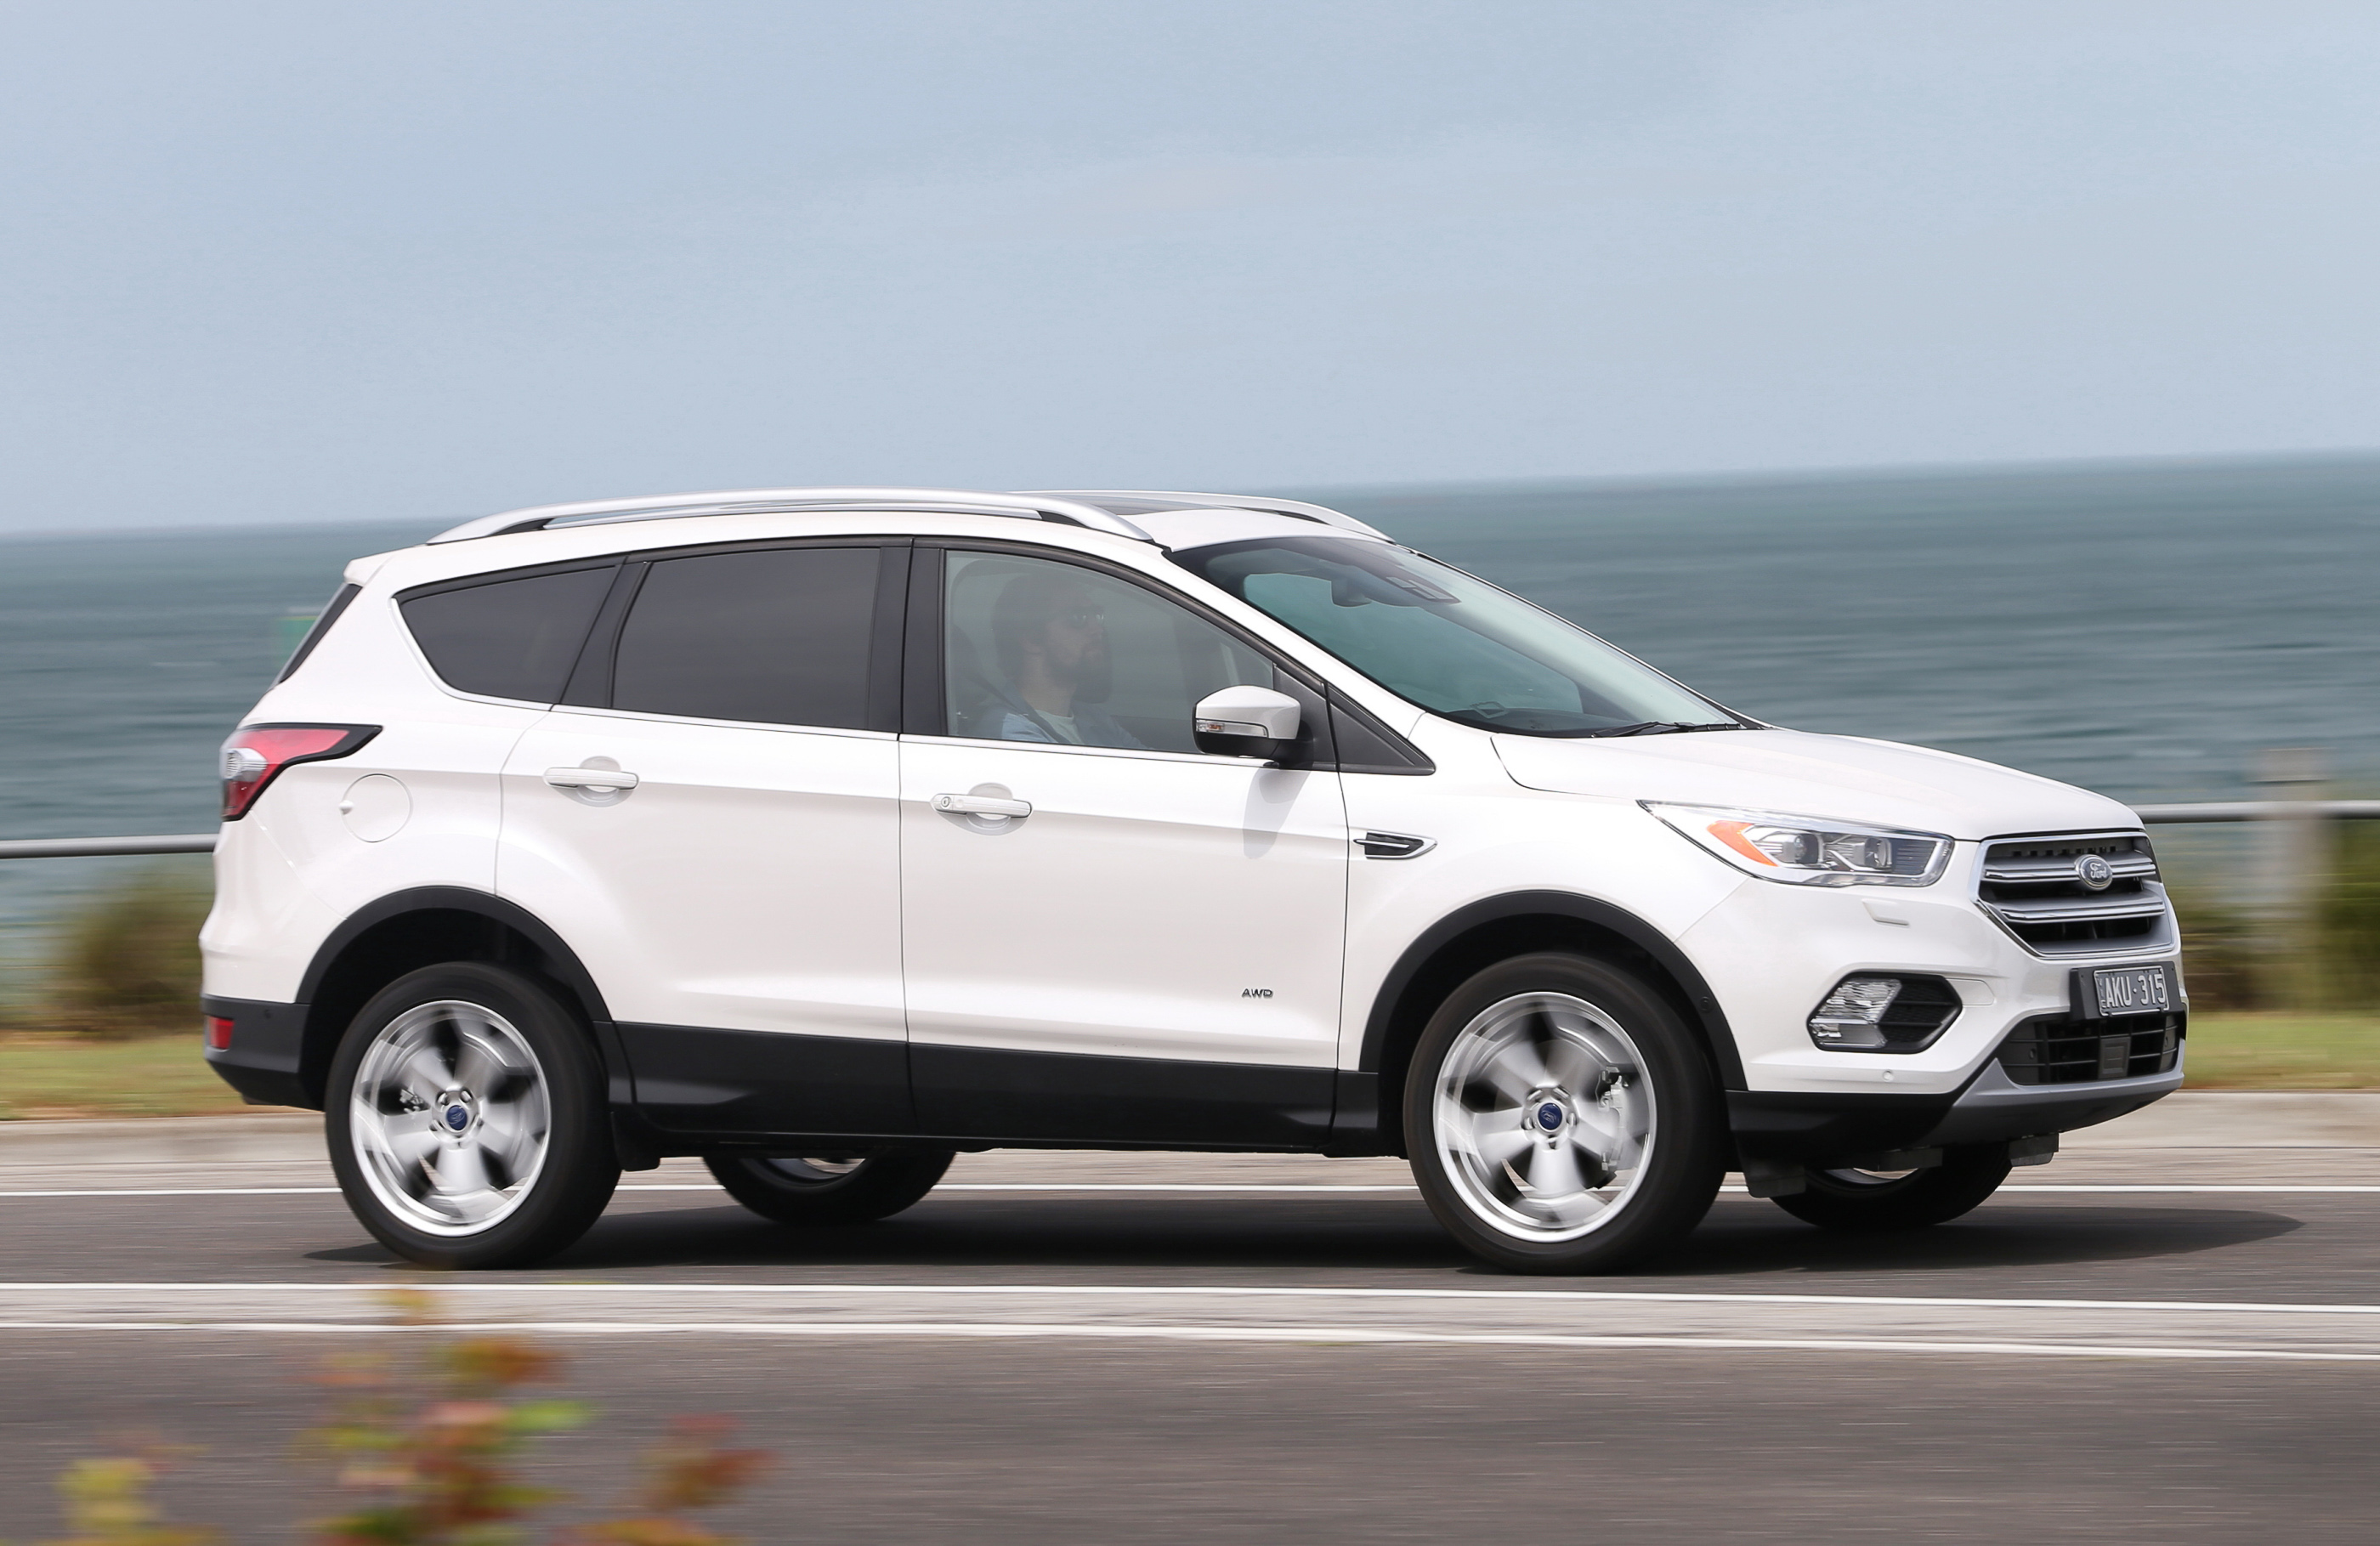 Ford Escape Ecoboost >> HEELS ON WHEELS: 2017 FORD ESCAPE REVIEW